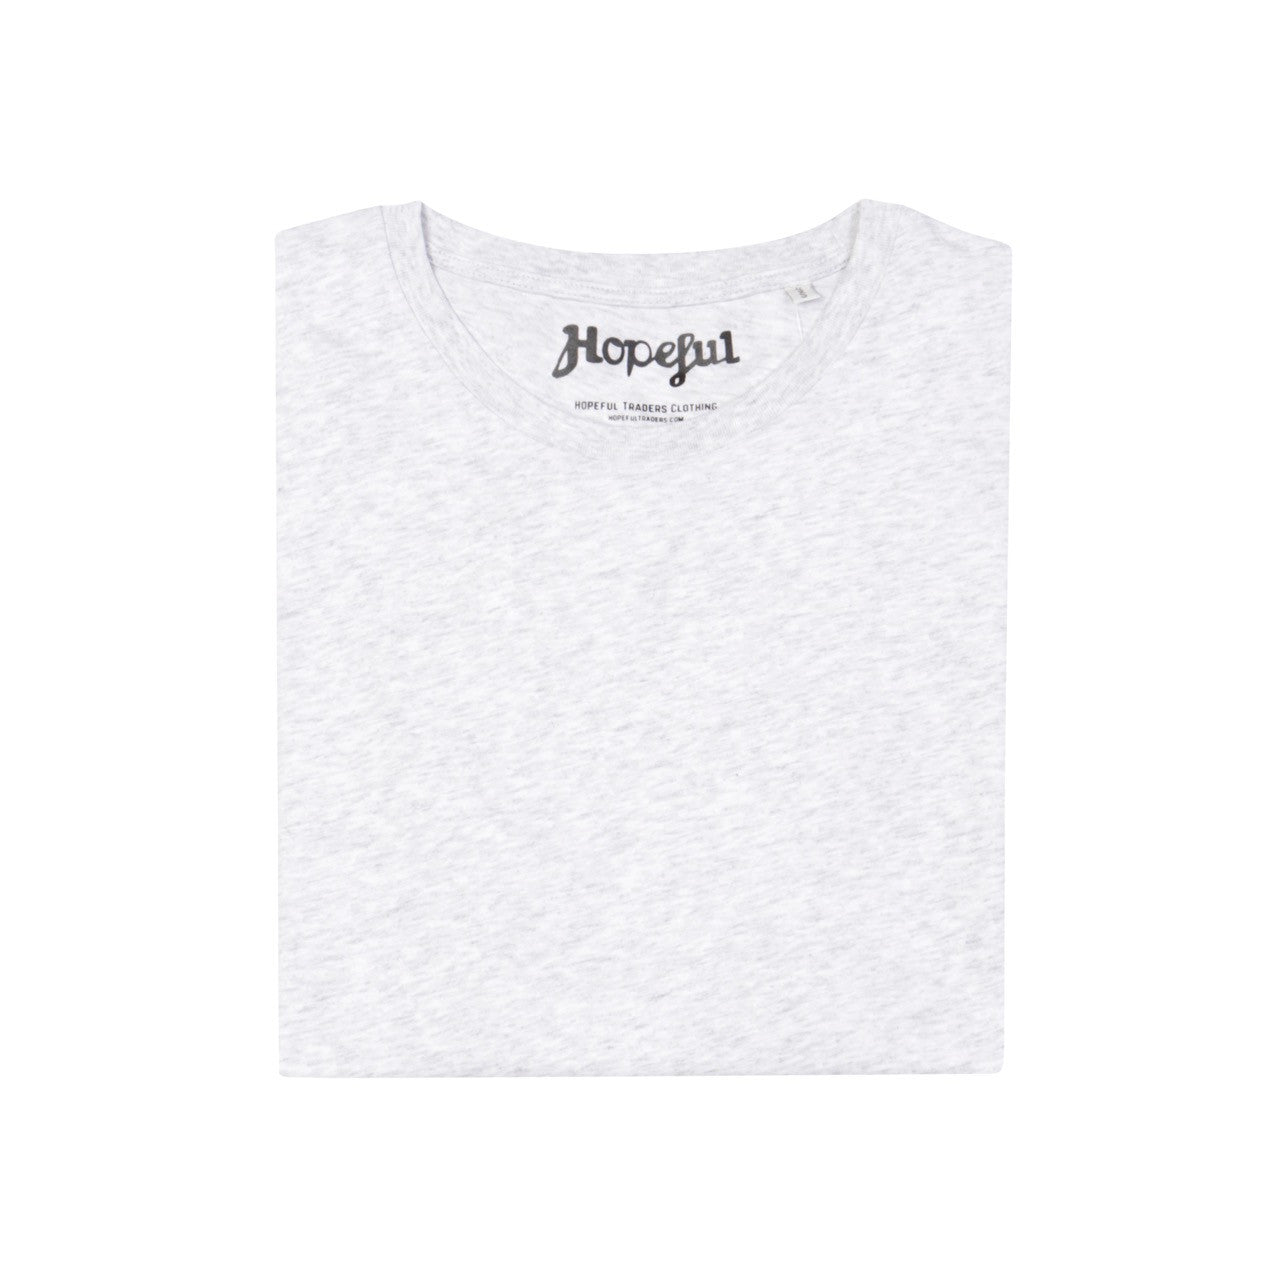 Hopeful Organic Tee // Ash